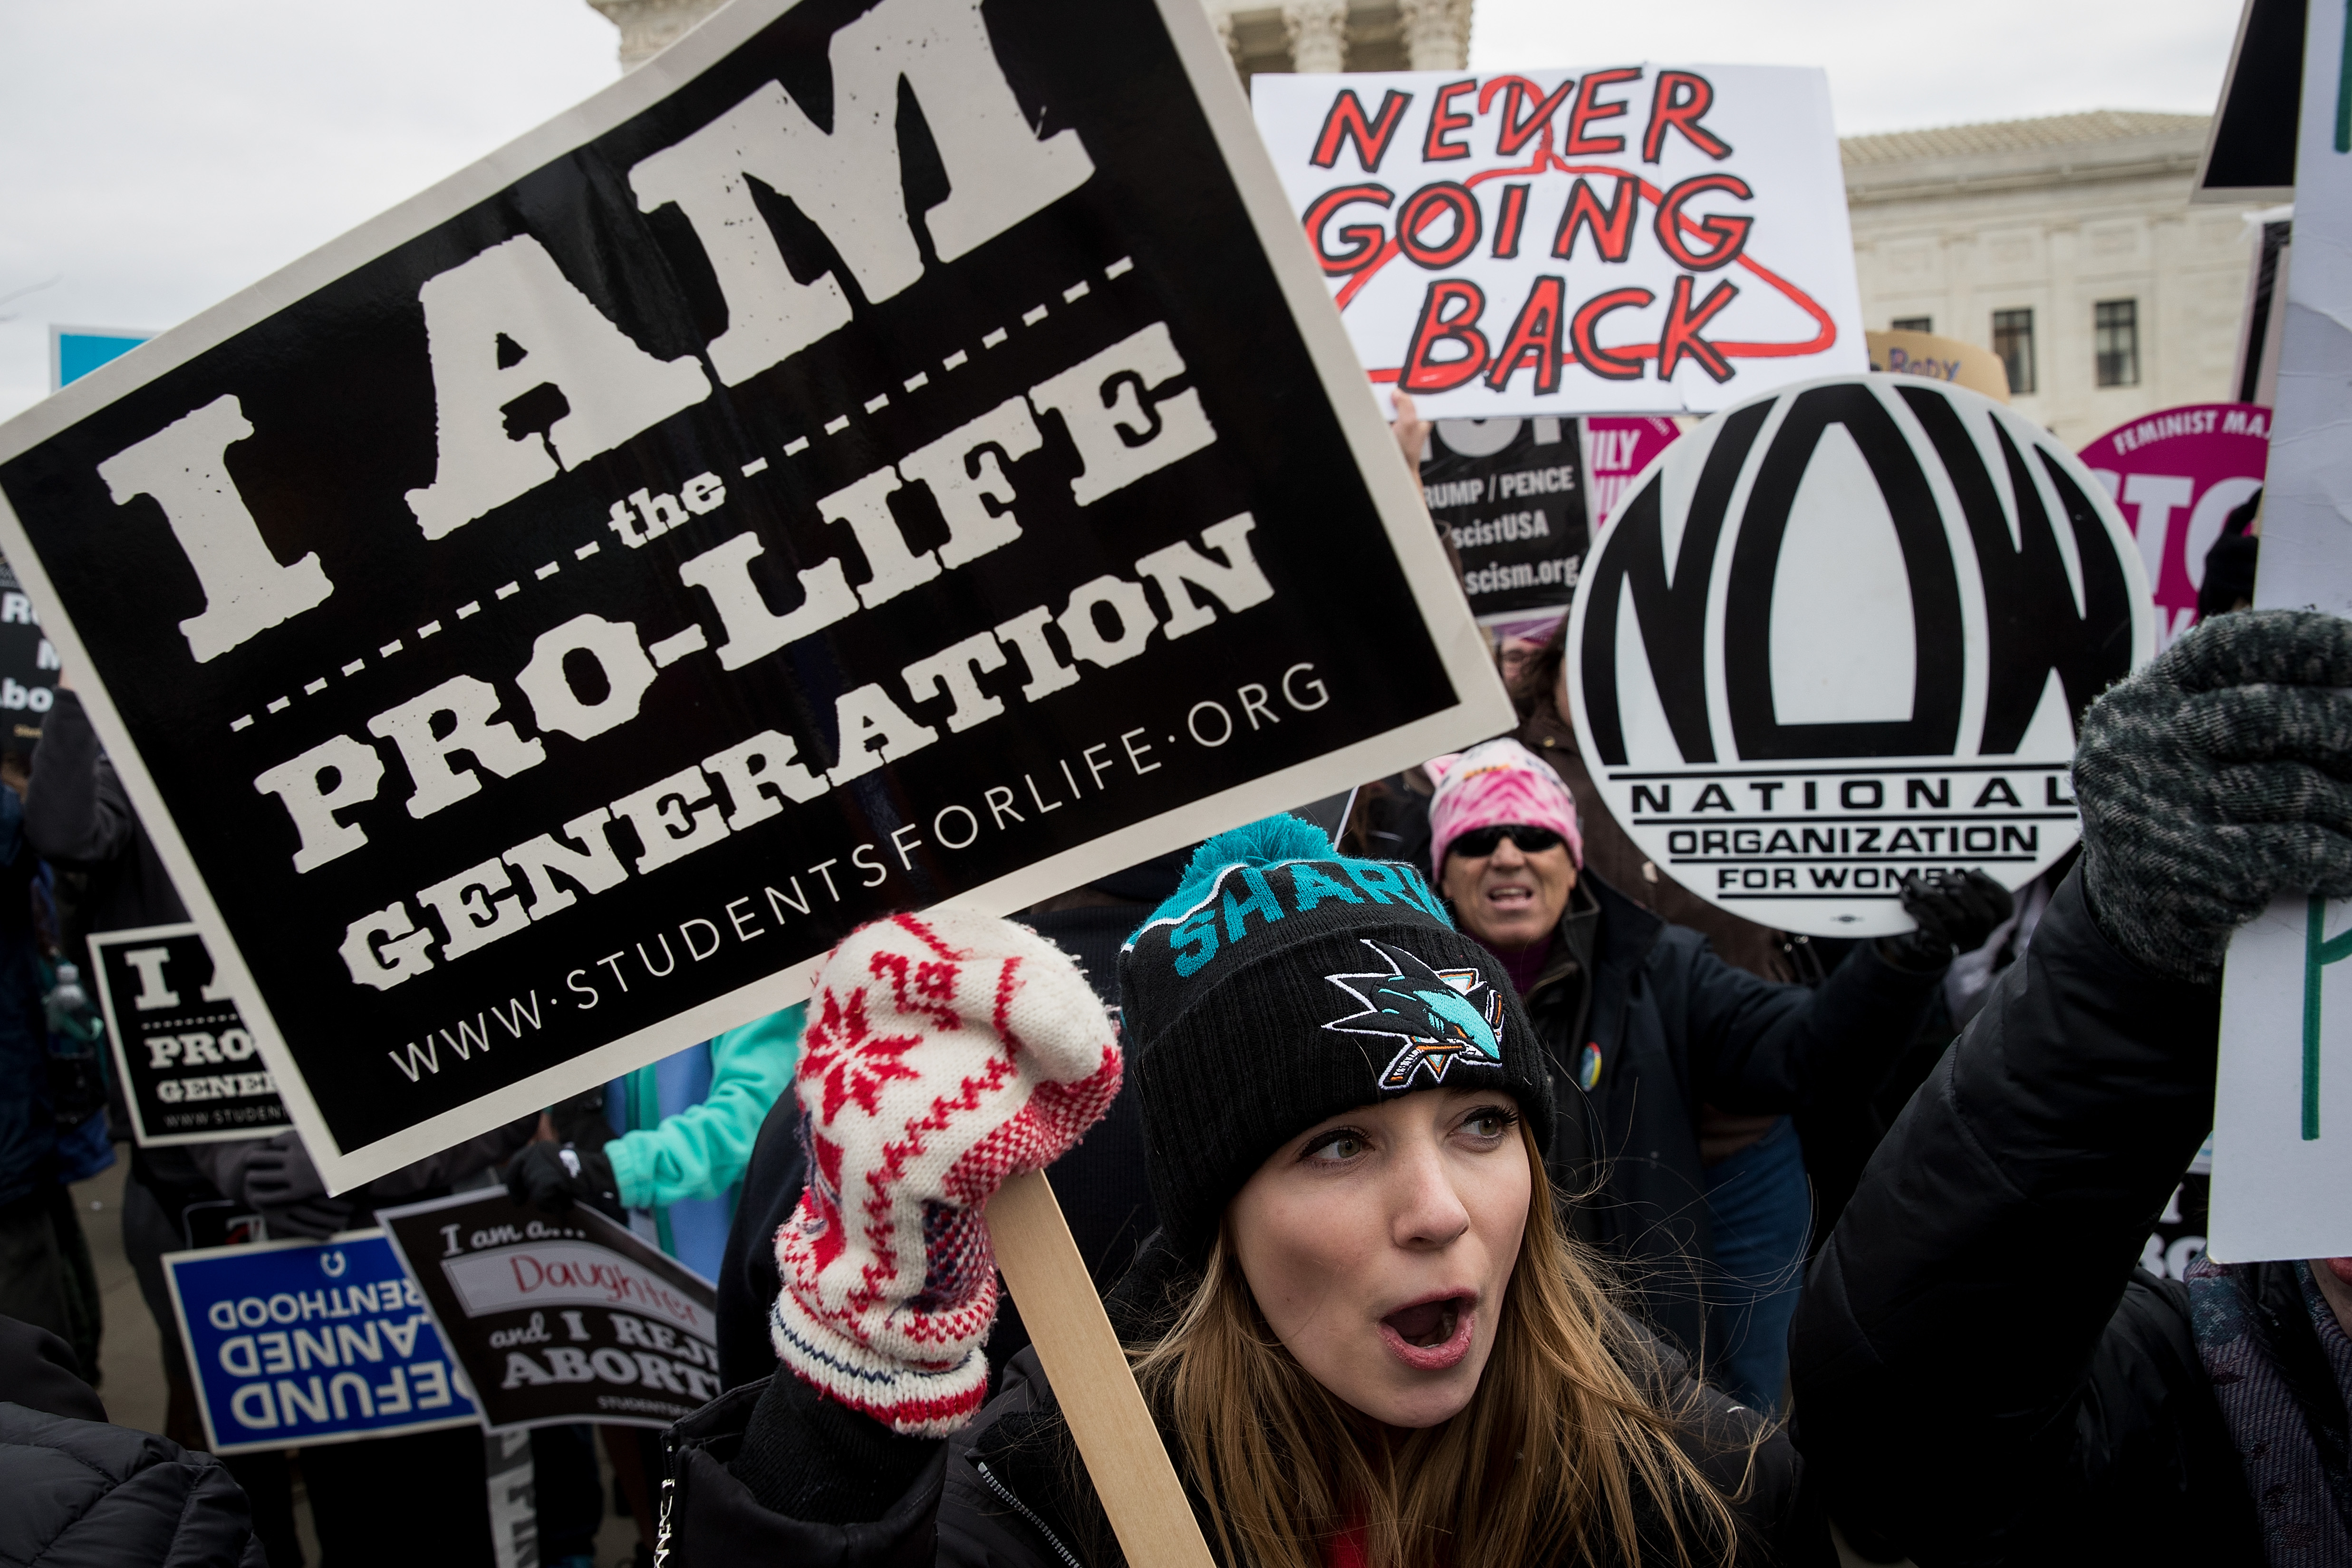 WASHINGTON, DC - JANUARY 27: A mix of anti-abortion advocates and pro-choice advocates rally outside of the Supreme Court during the March for Life, January 27, 2017 in Washington, DC. This year marks the 44th anniversary of the landmark Roe v. Wade Supreme Court case, which established a woman's constitutional right to an abortion. (Photo by Drew Angerer/Getty Images)